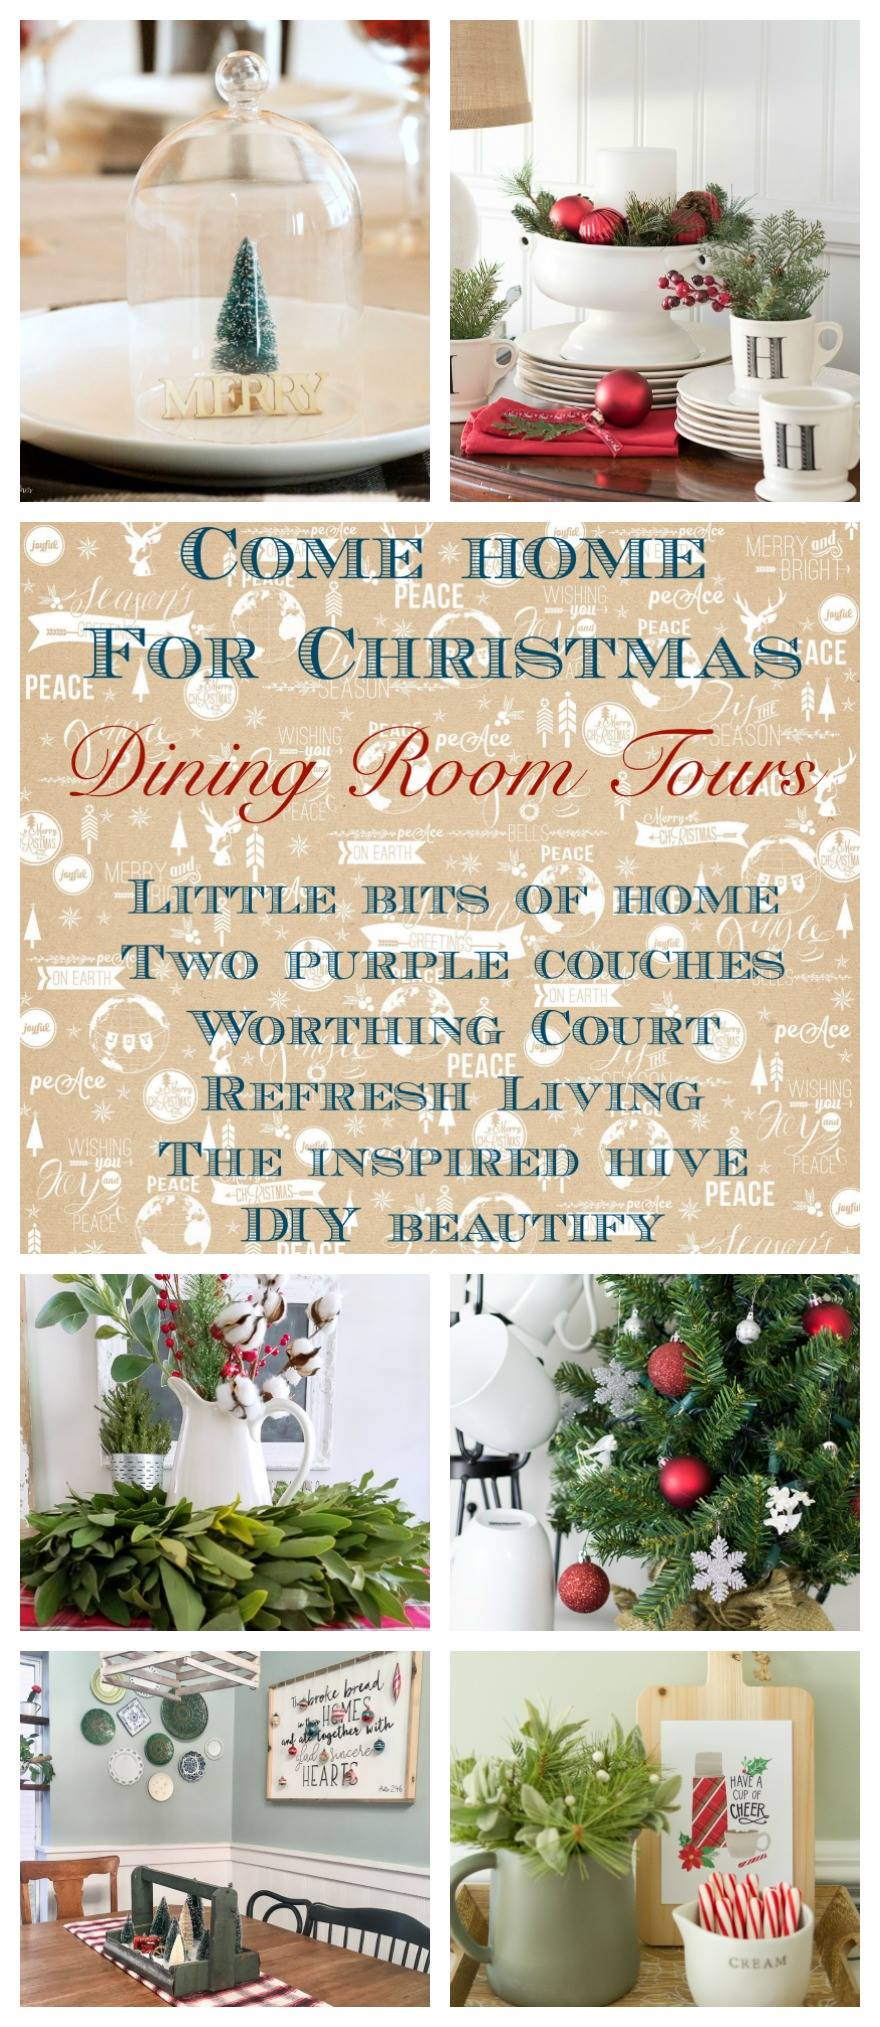 Come home for Christmas Dining Rooms